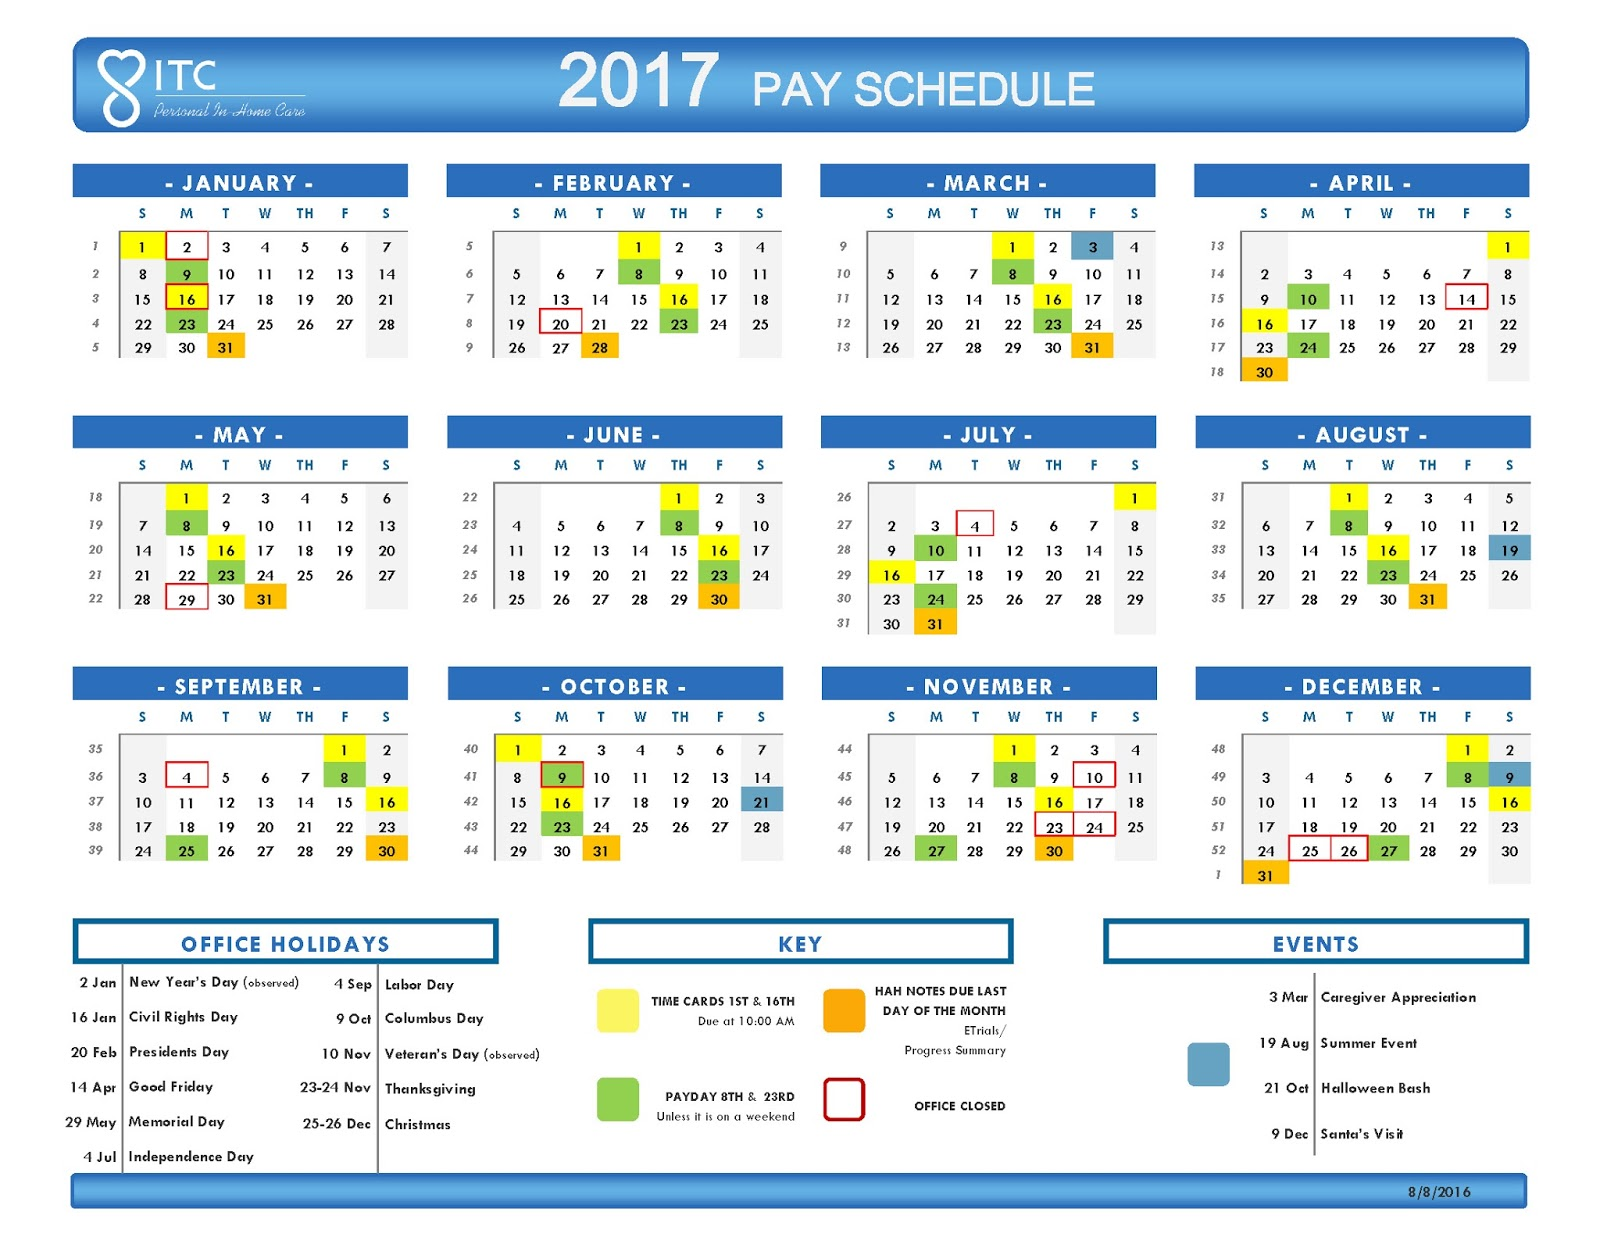 Va pay dates in Australia